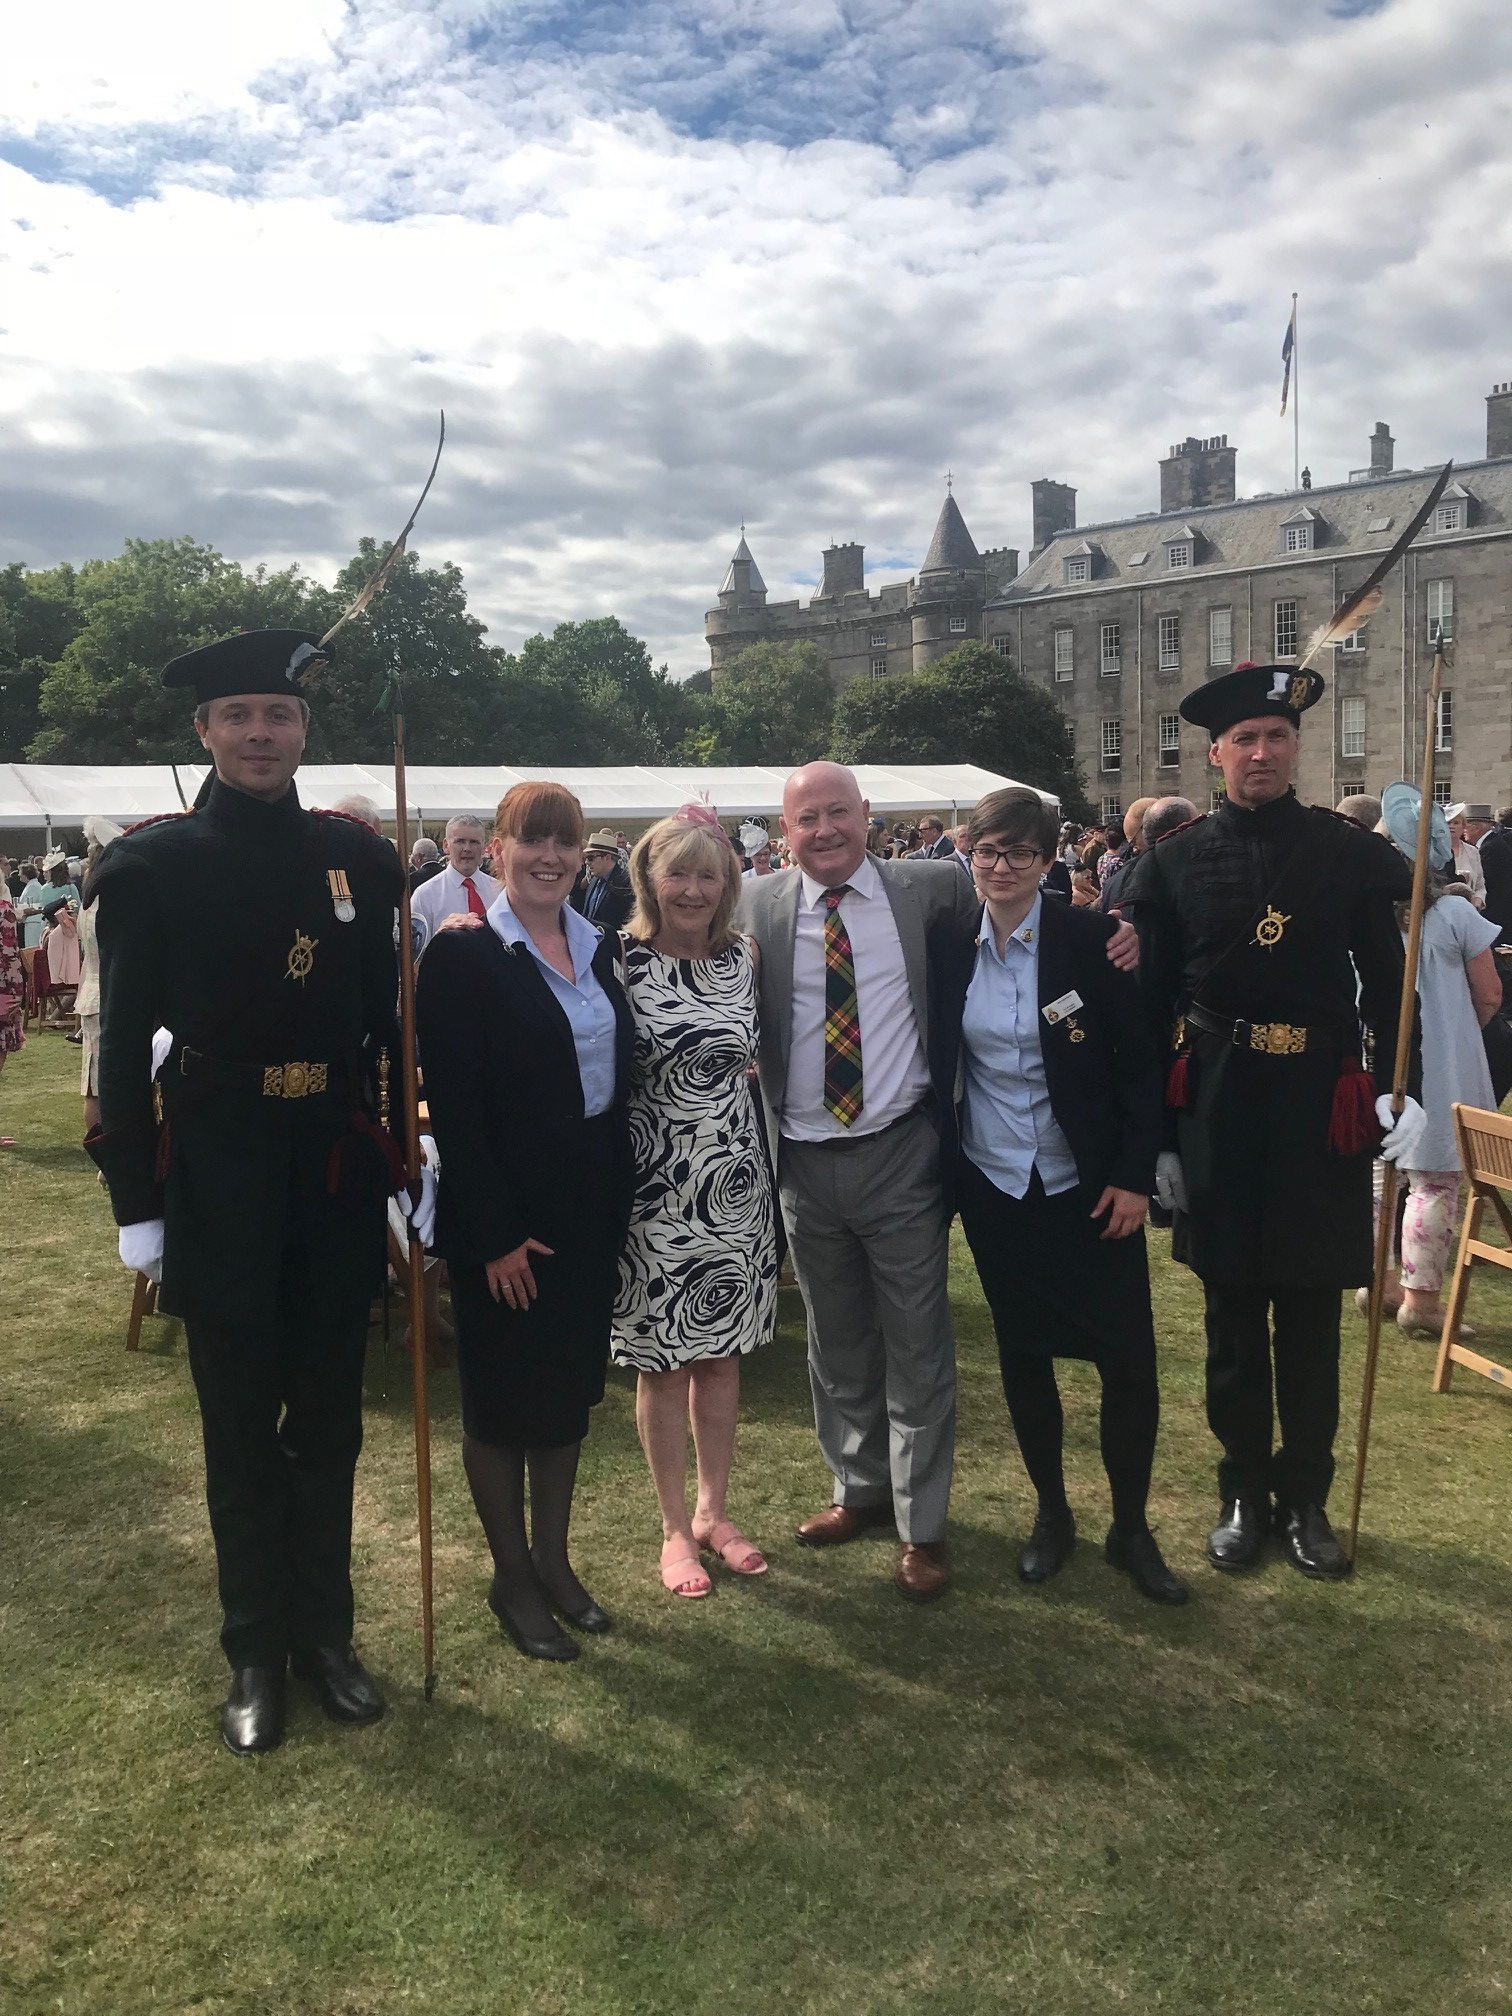 July 2018; In recognition of his work, Brian and his wife, Iris attended the Queen's Garden Party at Holyrood